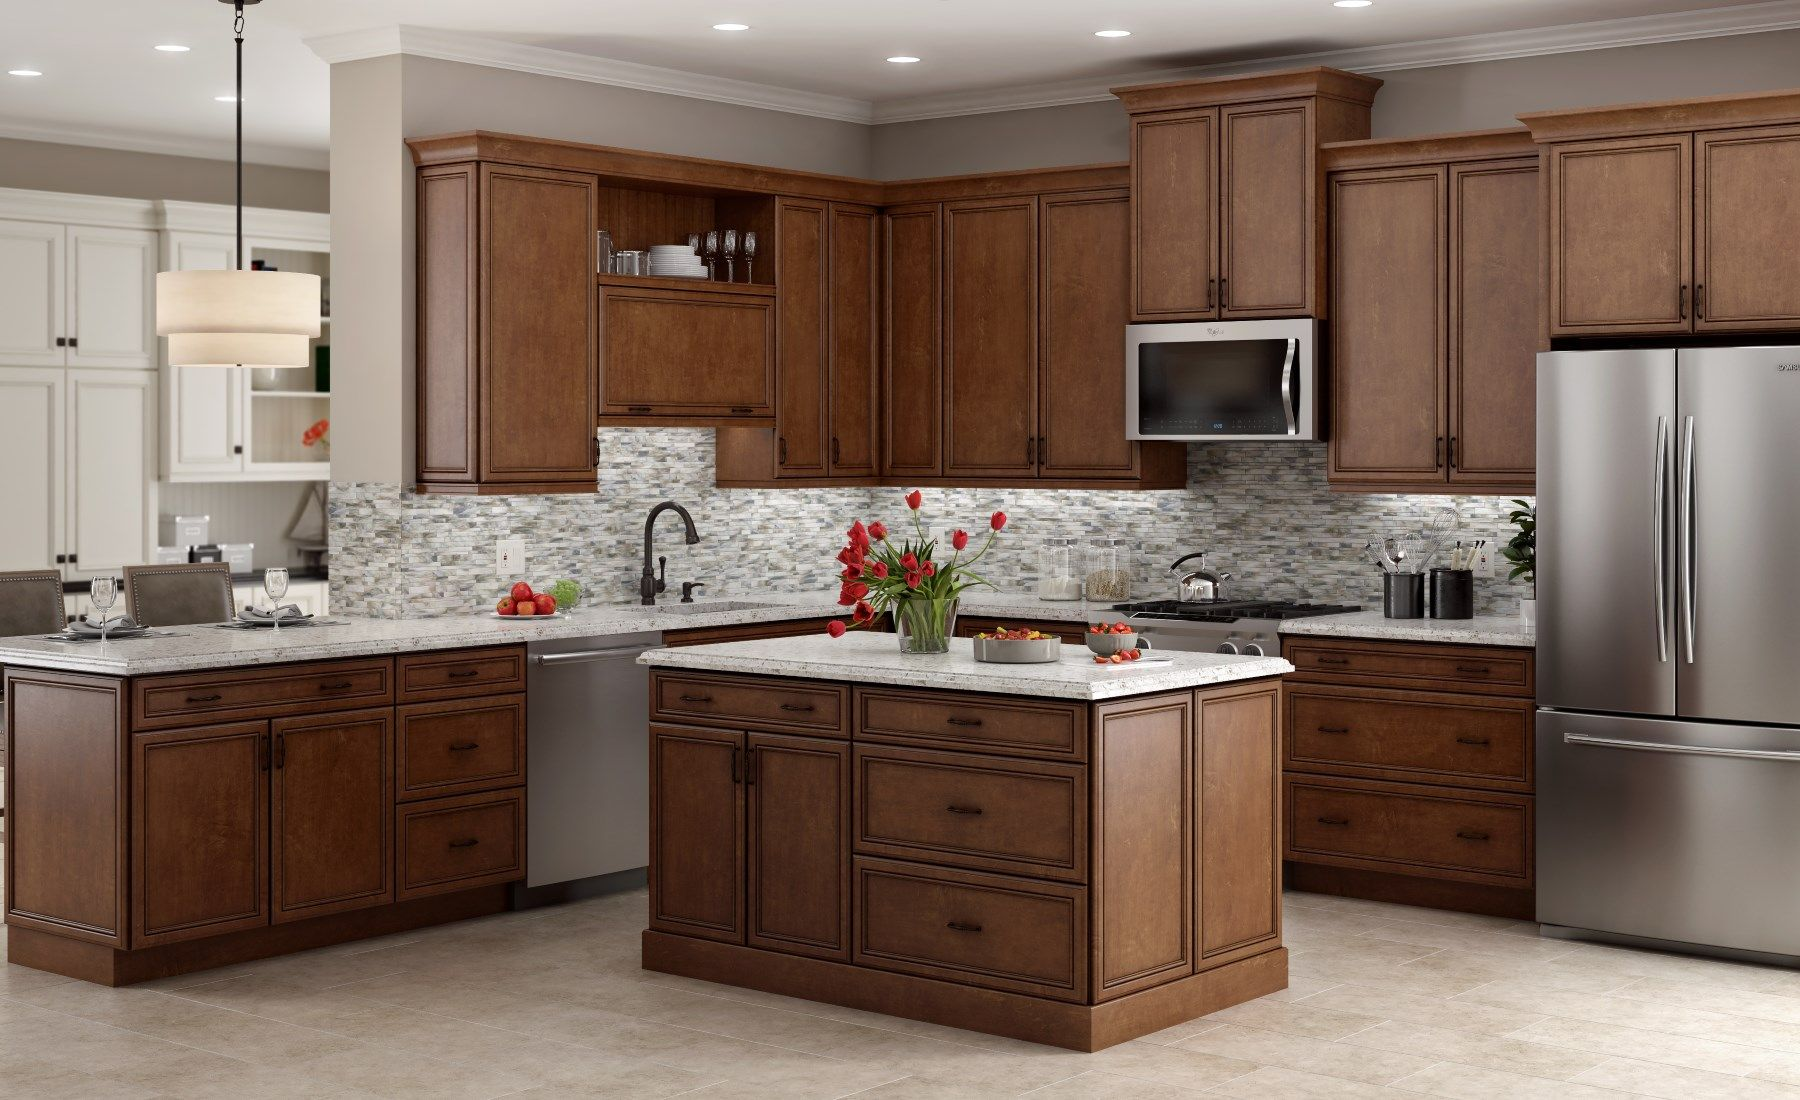 Image result for hampton bay cognac cabinets my new kitchen